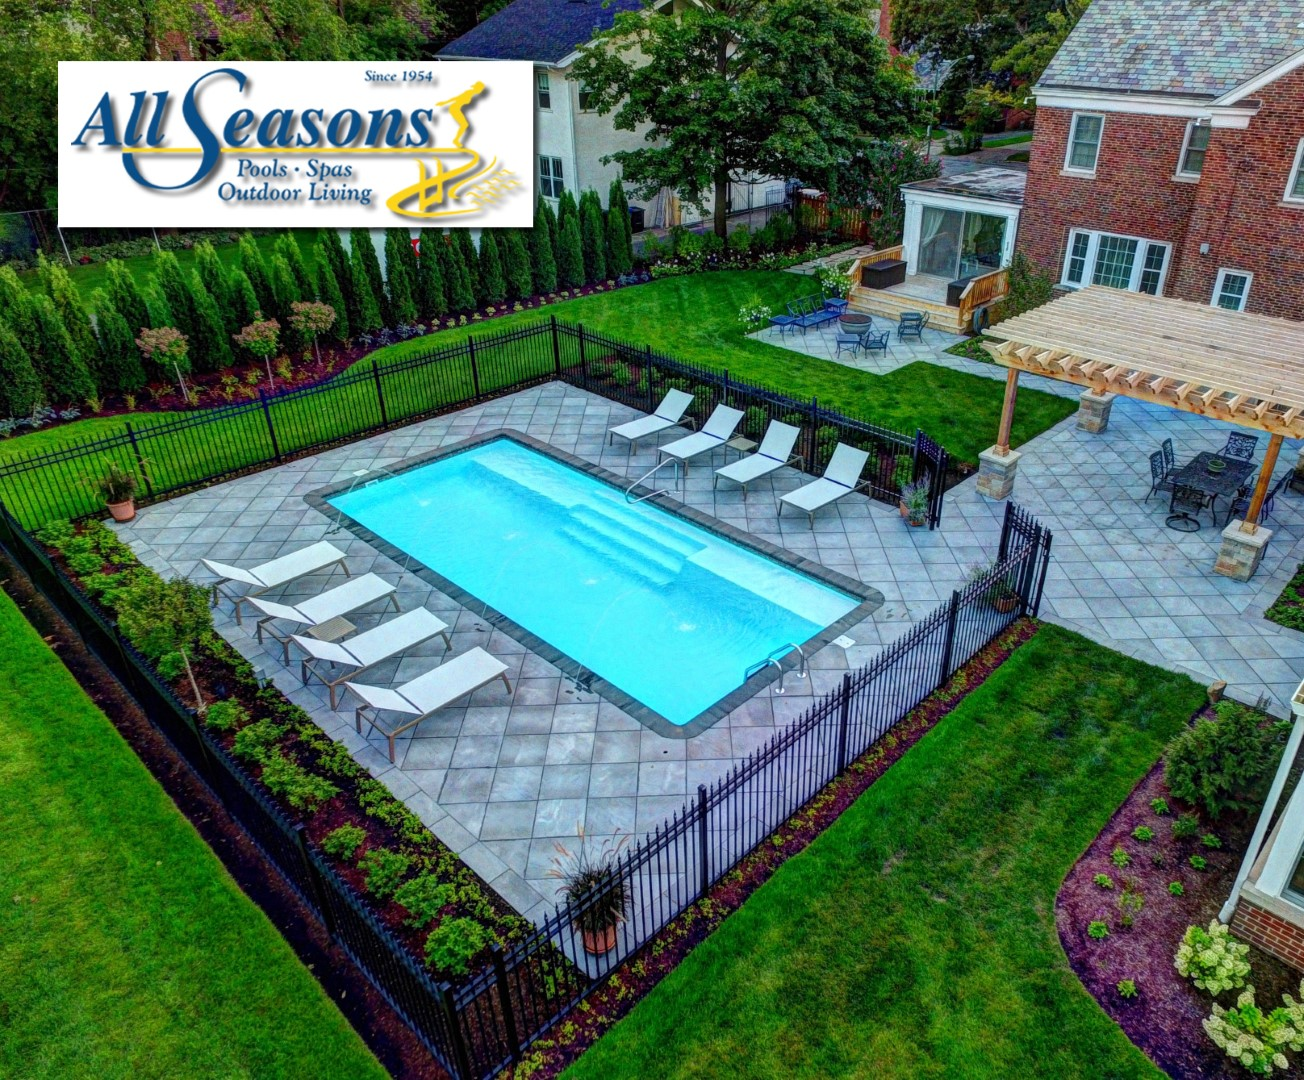 All Seasons Pools